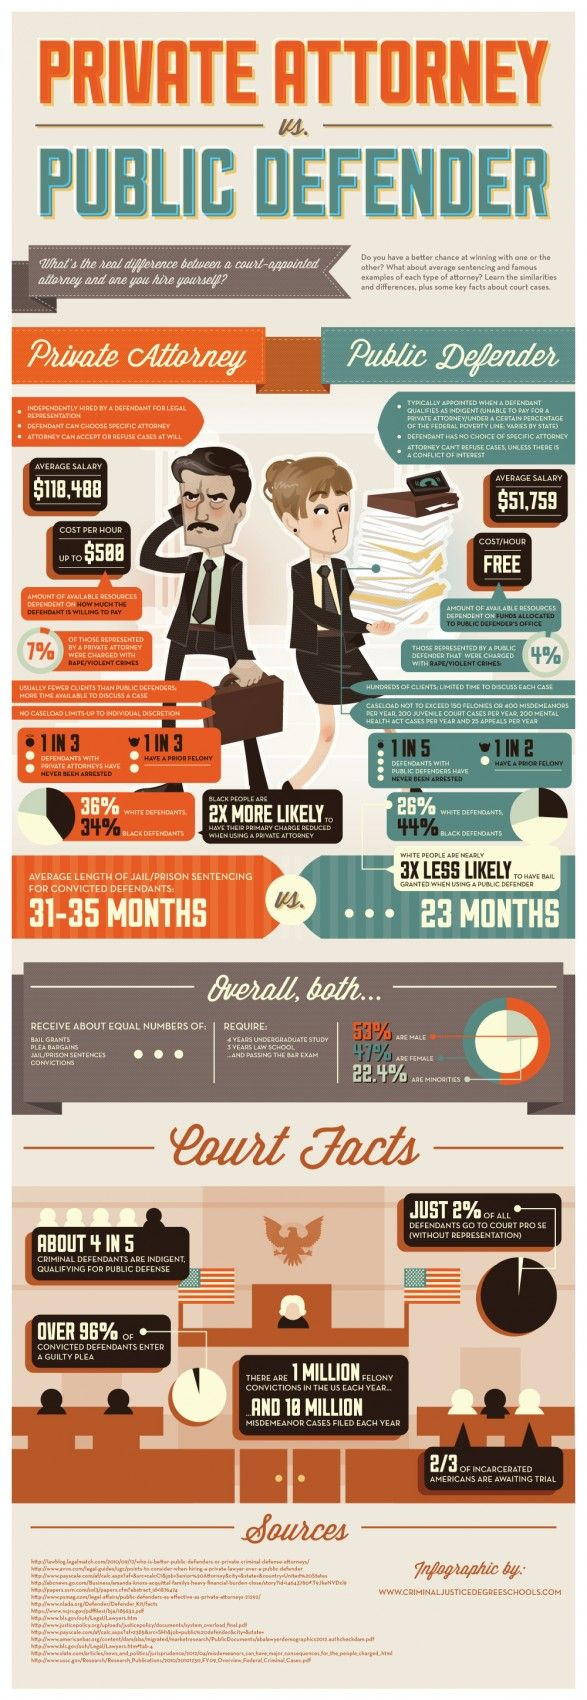 INFOGRAPHIC: Private Attorney vs. Public Defender  http://visual.ly/private-attorney-vs-public-defender